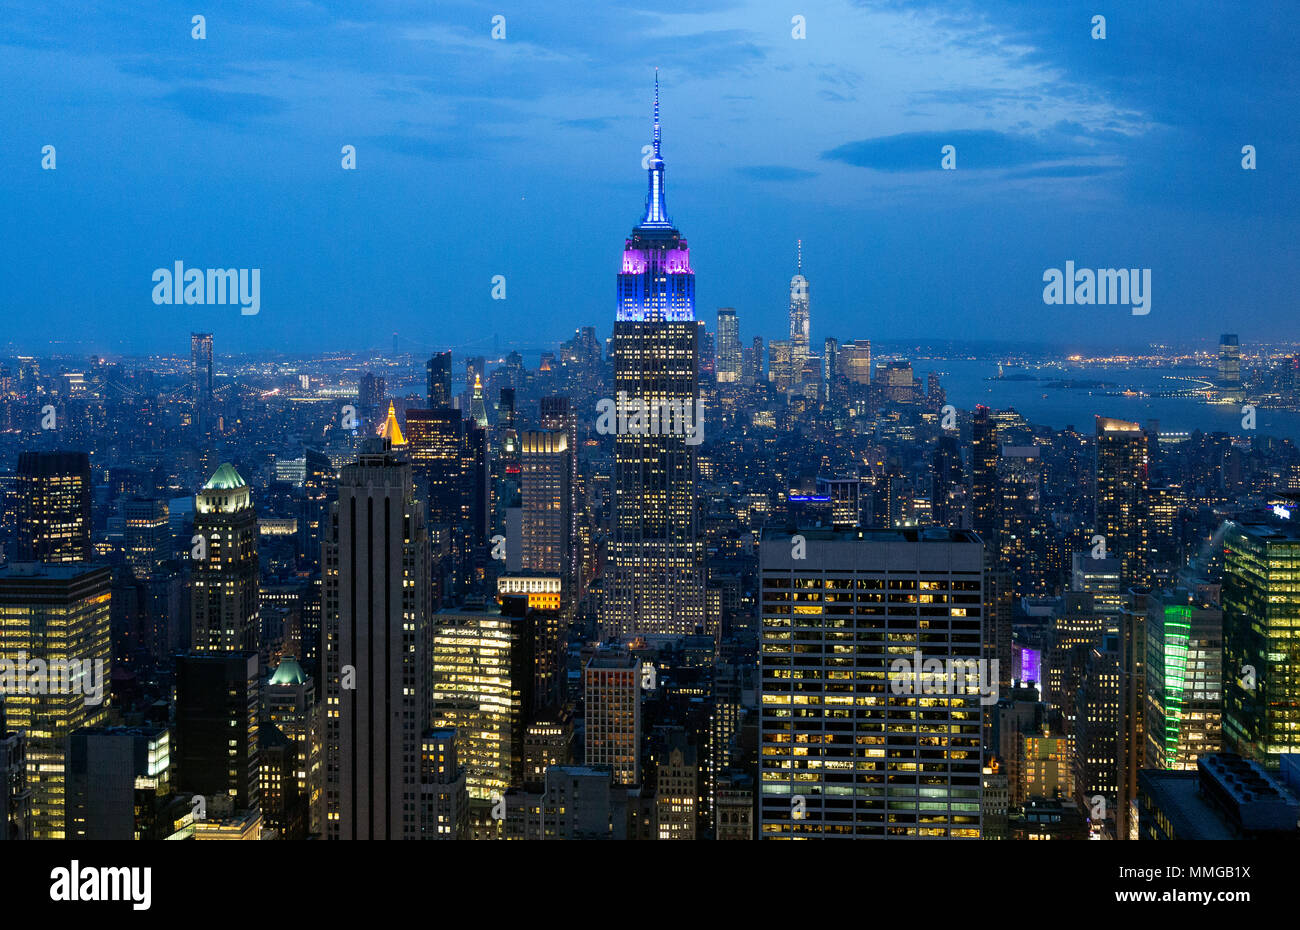 Empire State Building et New York skyline at Dusk, vu du haut de la roche plate-forme panoramique, Manhattan, New York City, États-Unis d'Amérique Photo Stock